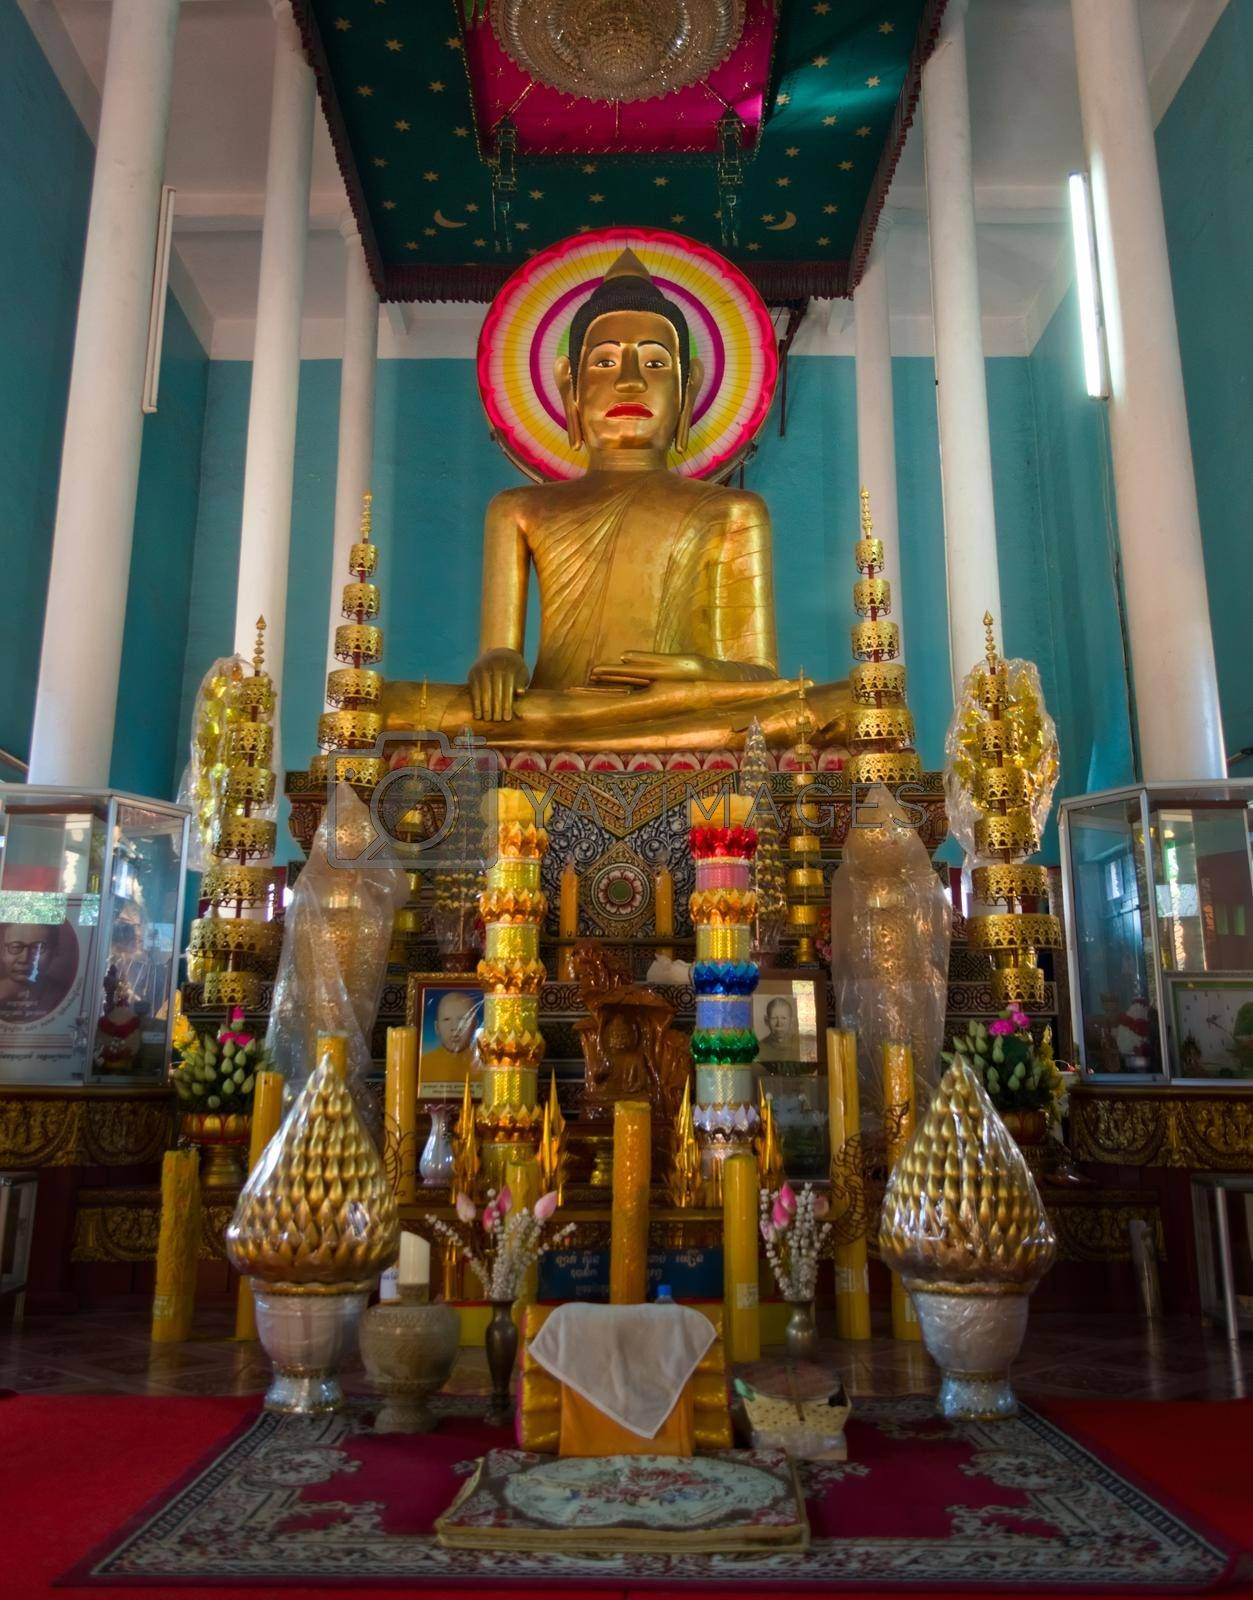 Royalty free image of 2019-11-16 / Siem Reap, Cambodia - Golden statue of Buddha in Wat Preah Prom Rath, a buddhist complex built in the 13th century. by hernan_hyper